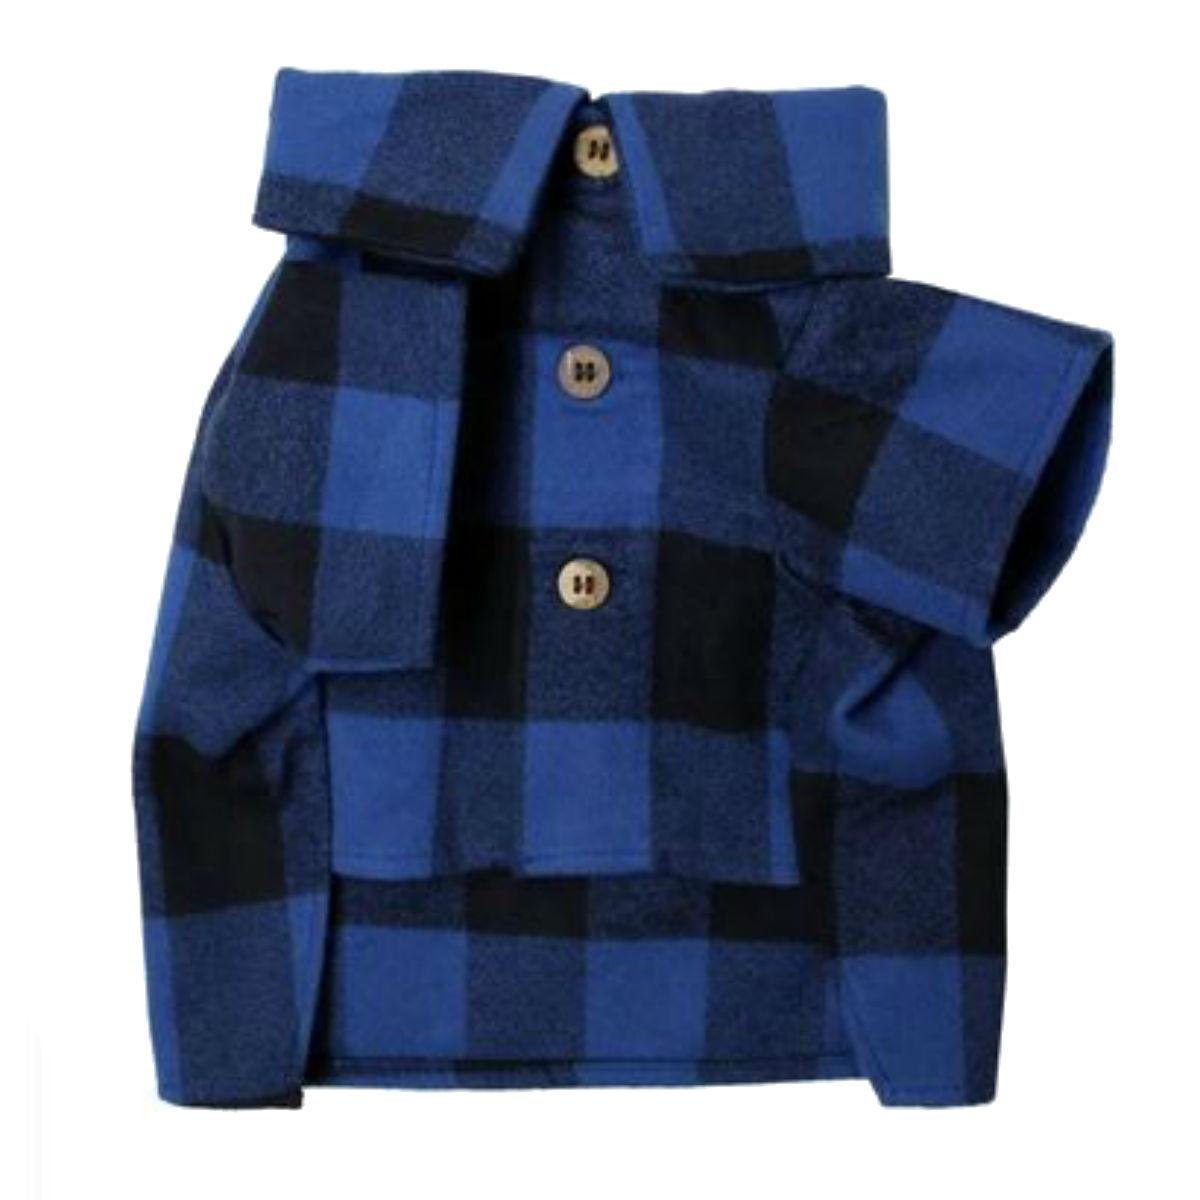 Pacifica Flannel Dog Shirt by Dog Threads - Blue and Black Plaid